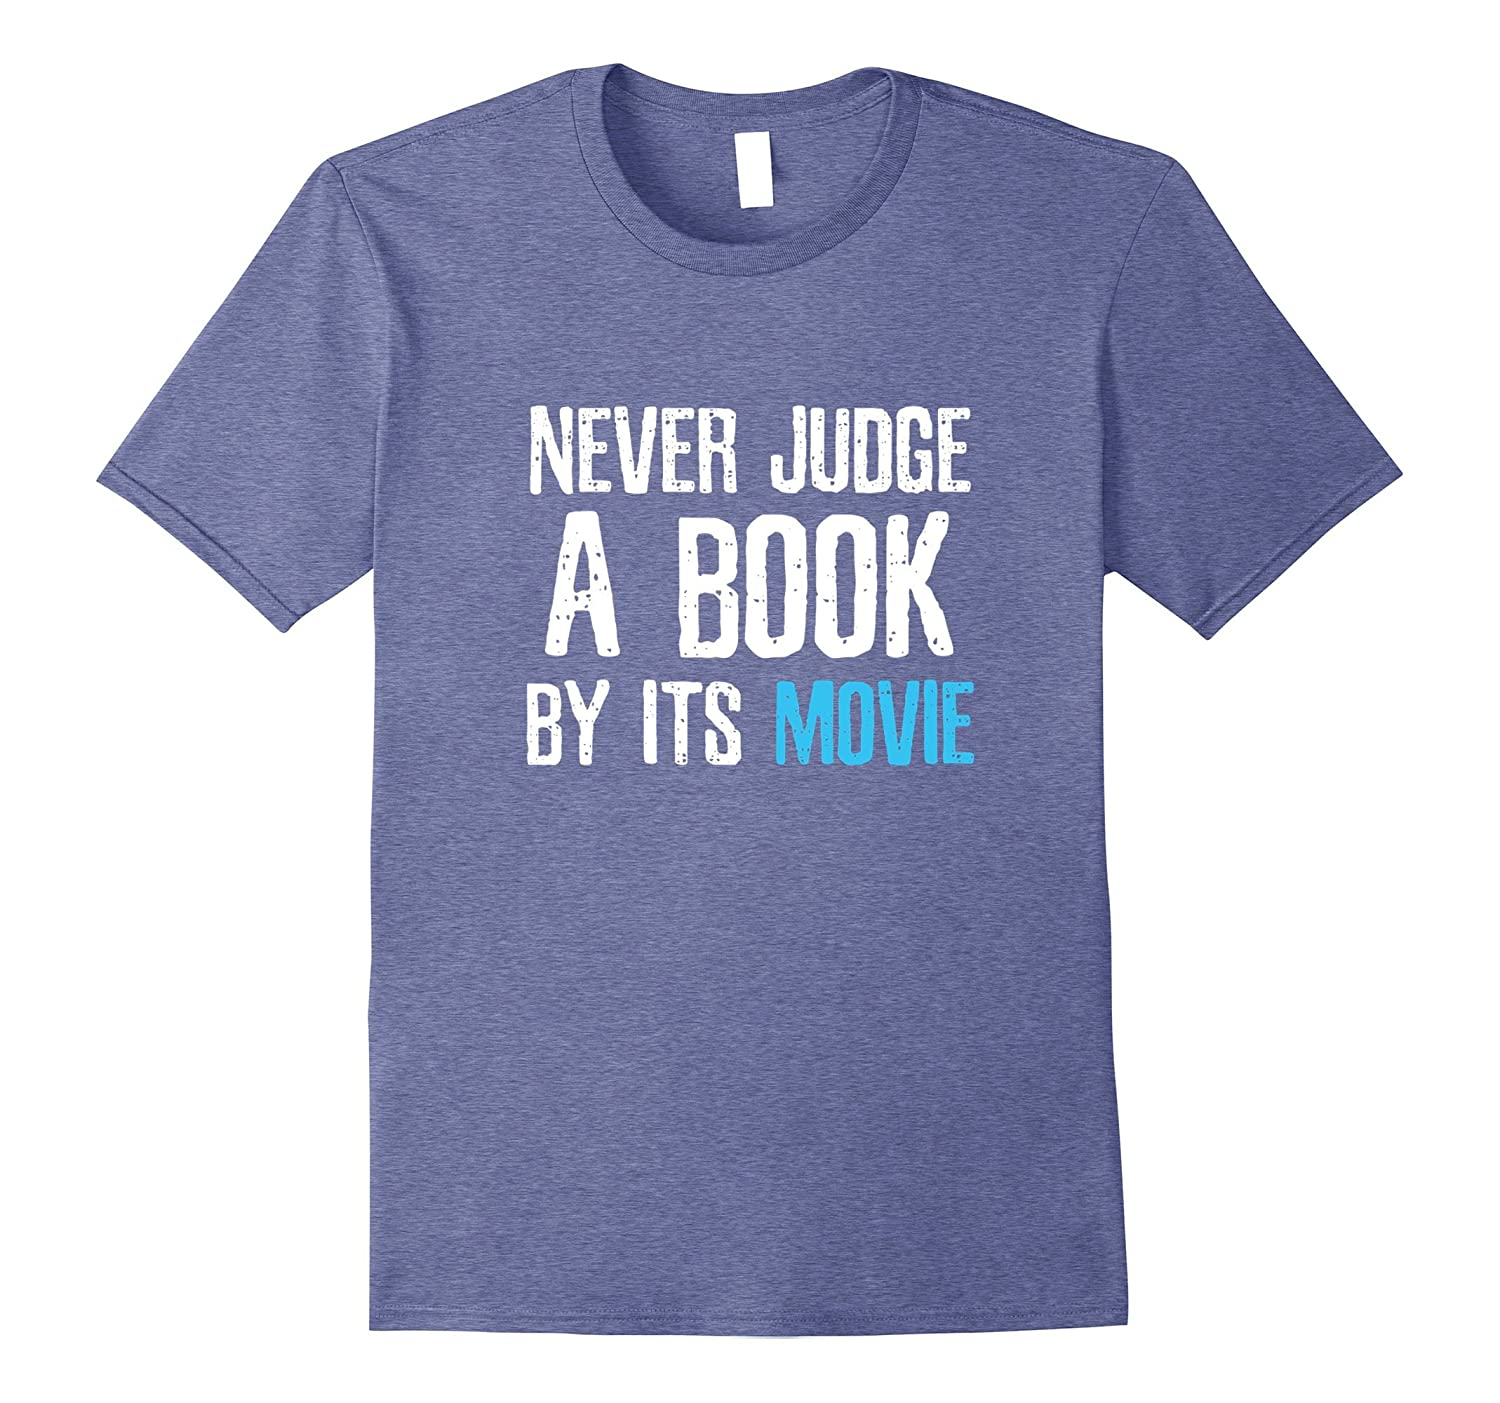 c90177c2 Funny Reading T-Shirt - Never Judge a Book by Its Movie Tee-ANZ ...